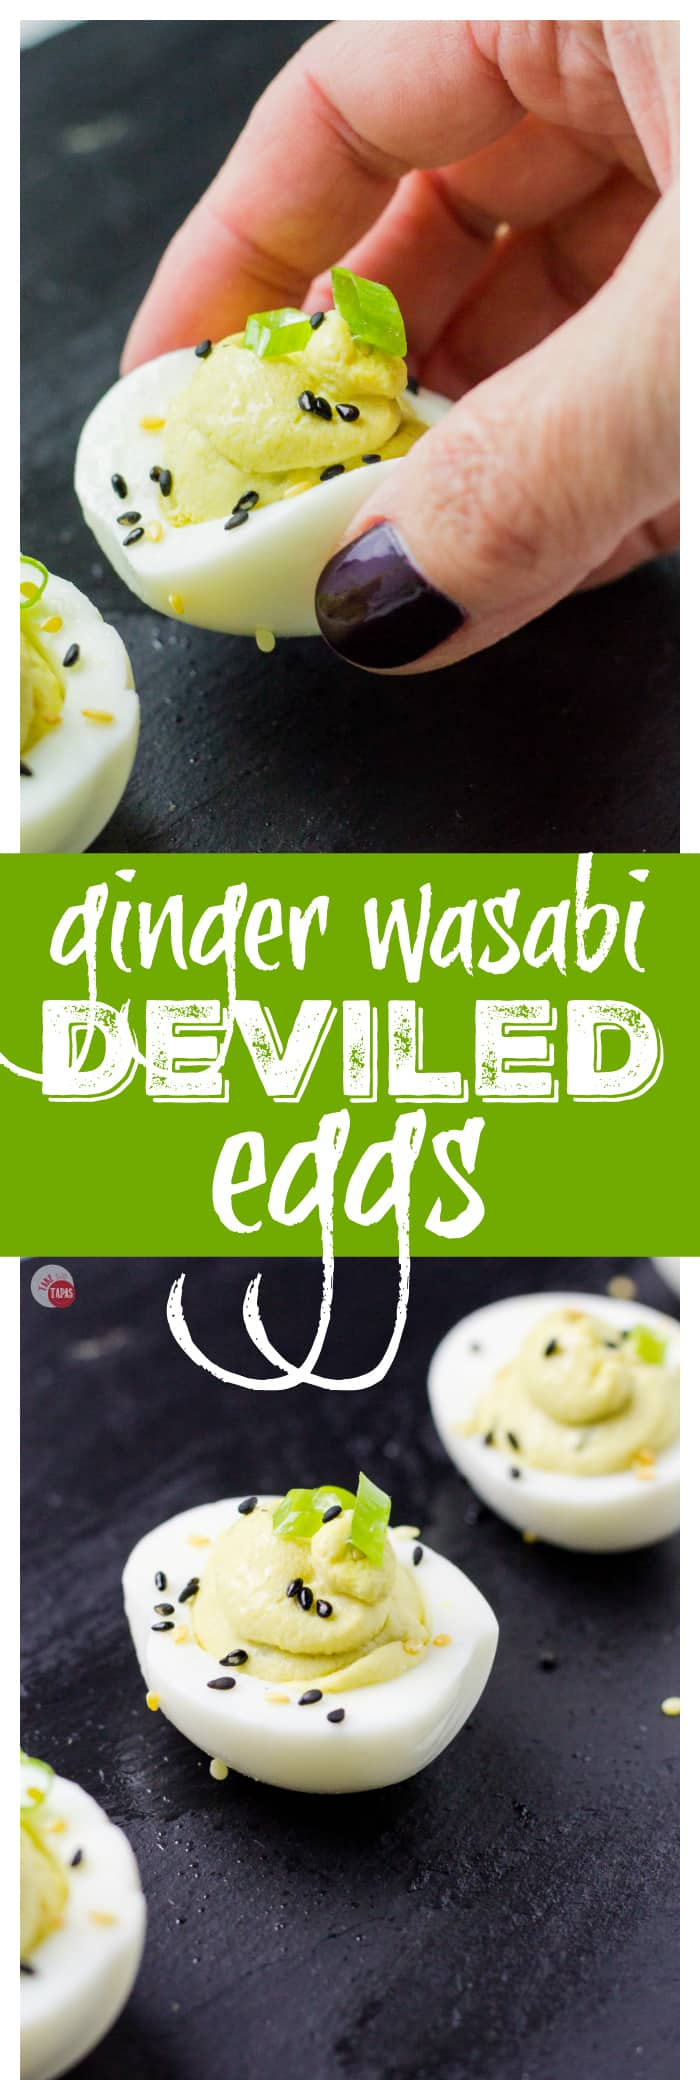 Gorgeous Wasabi Deviled Eggs | Take Two Tapas | #deviledeggs #deviled #eggs #ginger #wasabi #Asian #Easter #AD #ElevateYourPlate #MothersDay